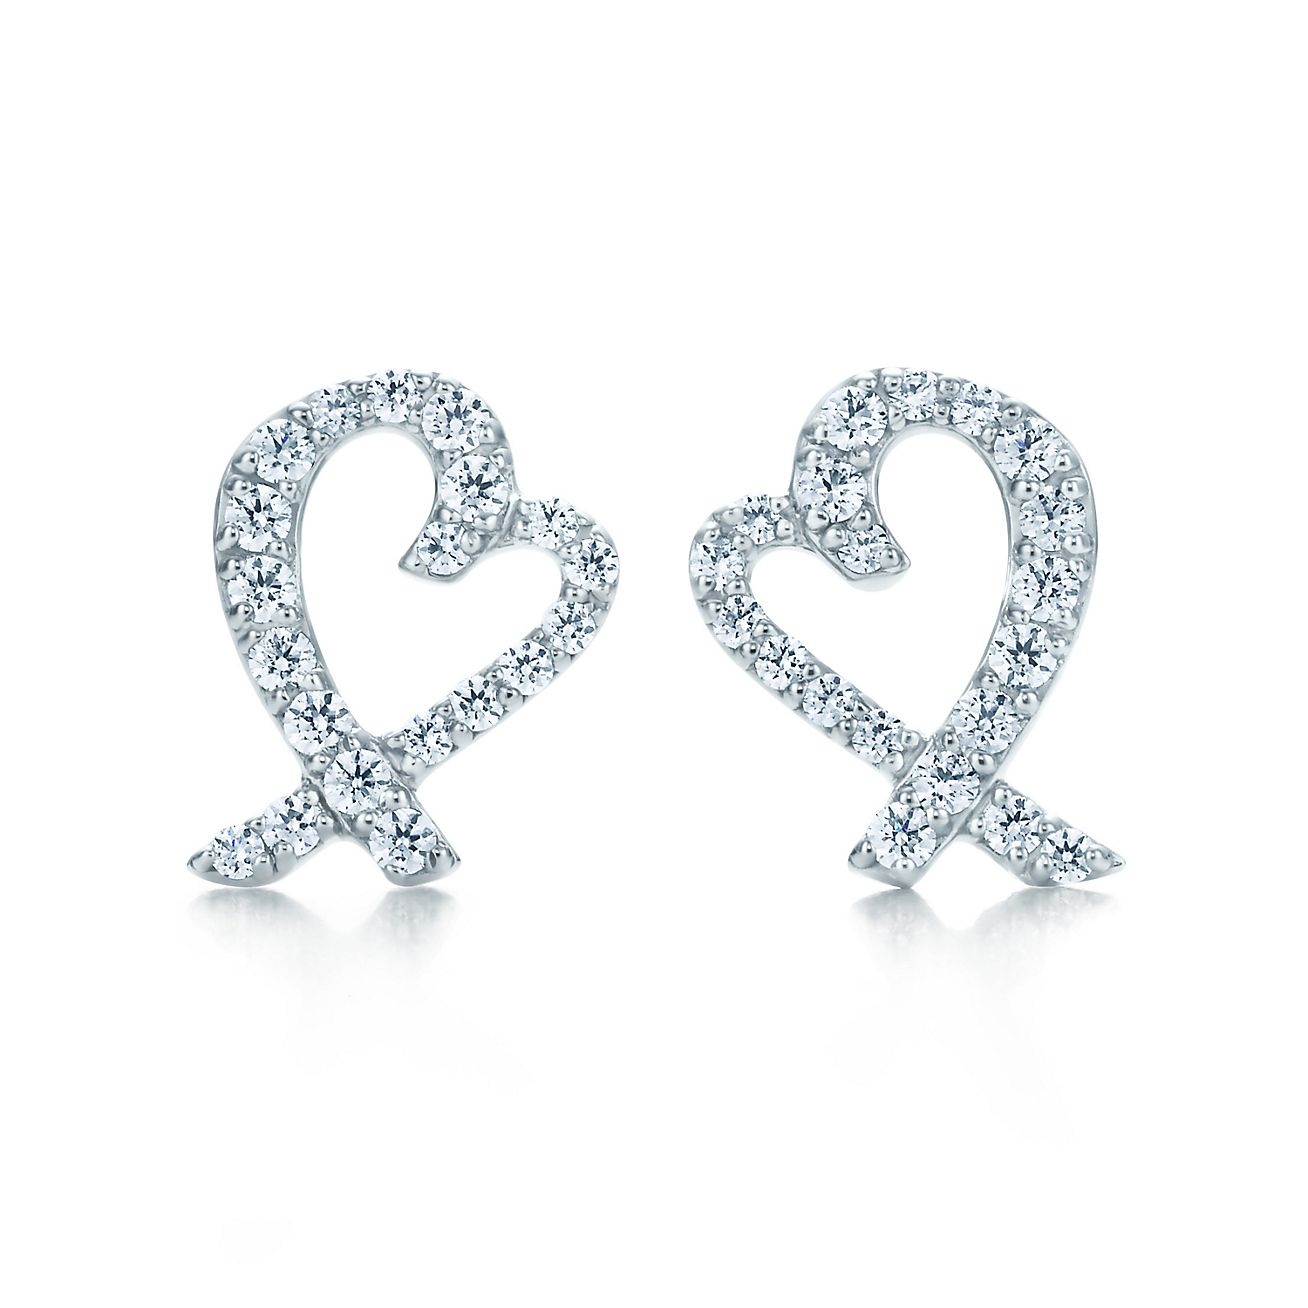 Paloma Pico Loving Heart Earrings